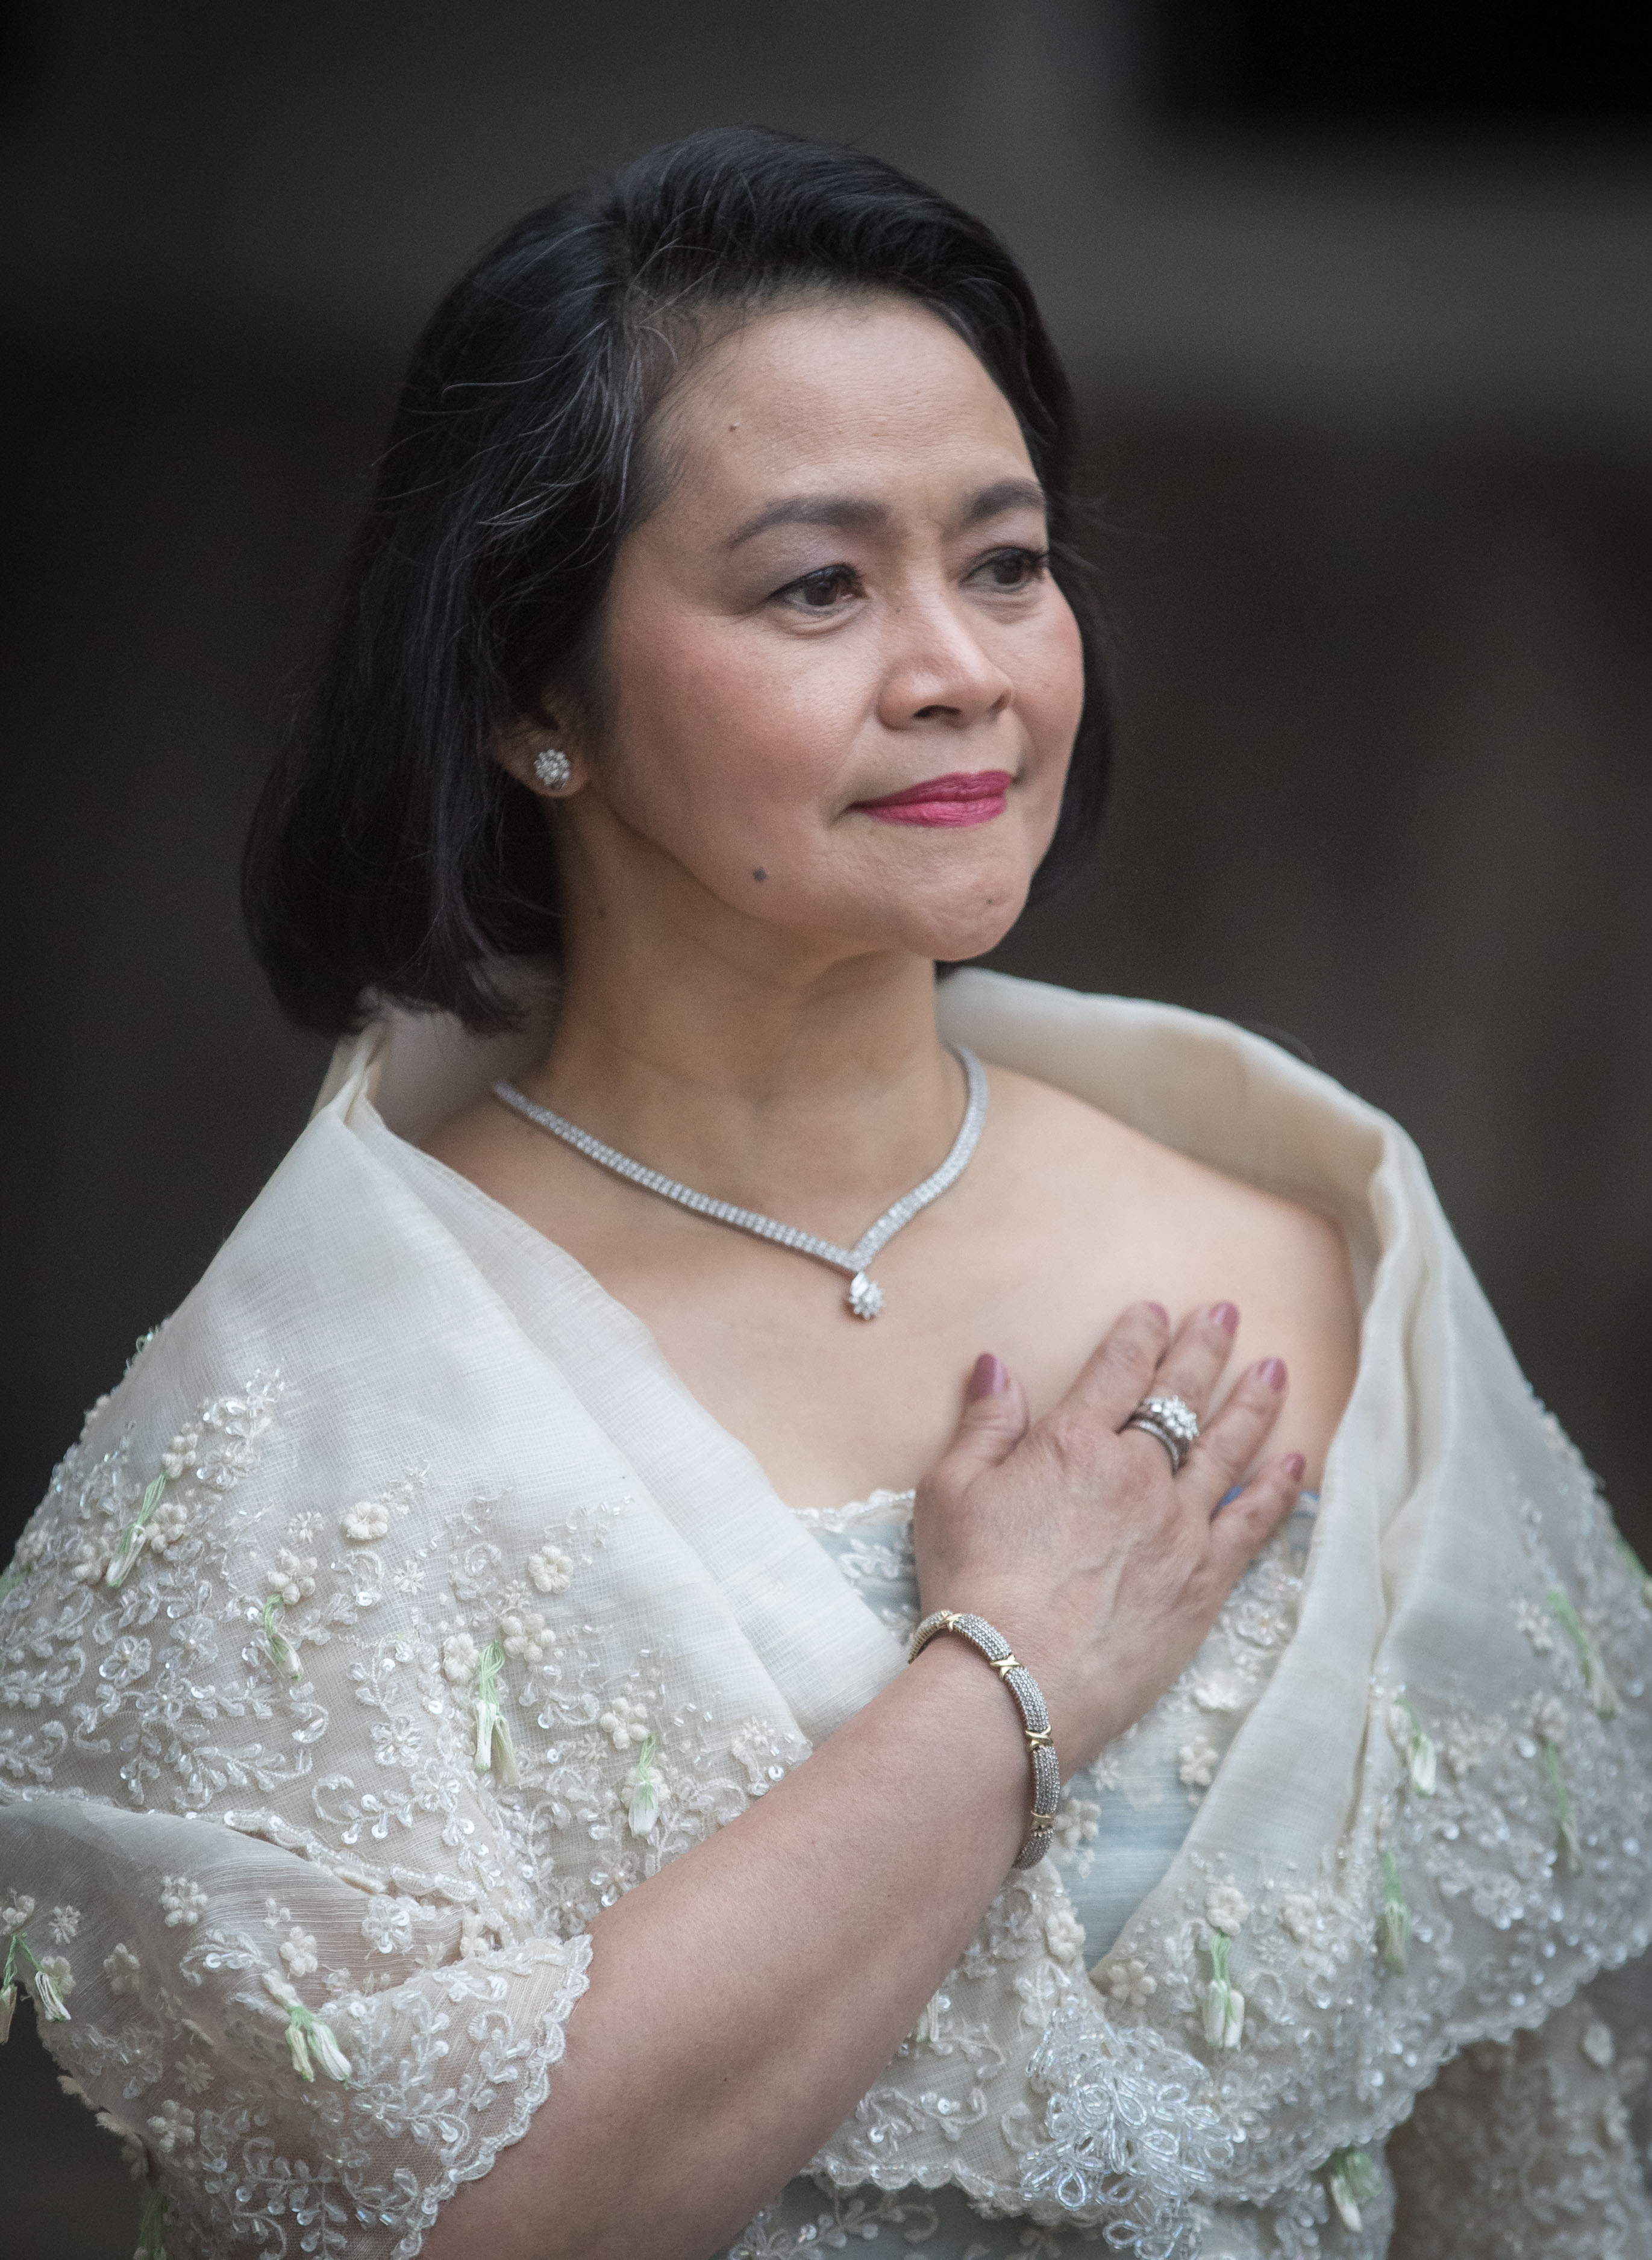 botschafter/PHILIPPINES - H.E. Maria Cleofe R. Natividad10/1.jpg